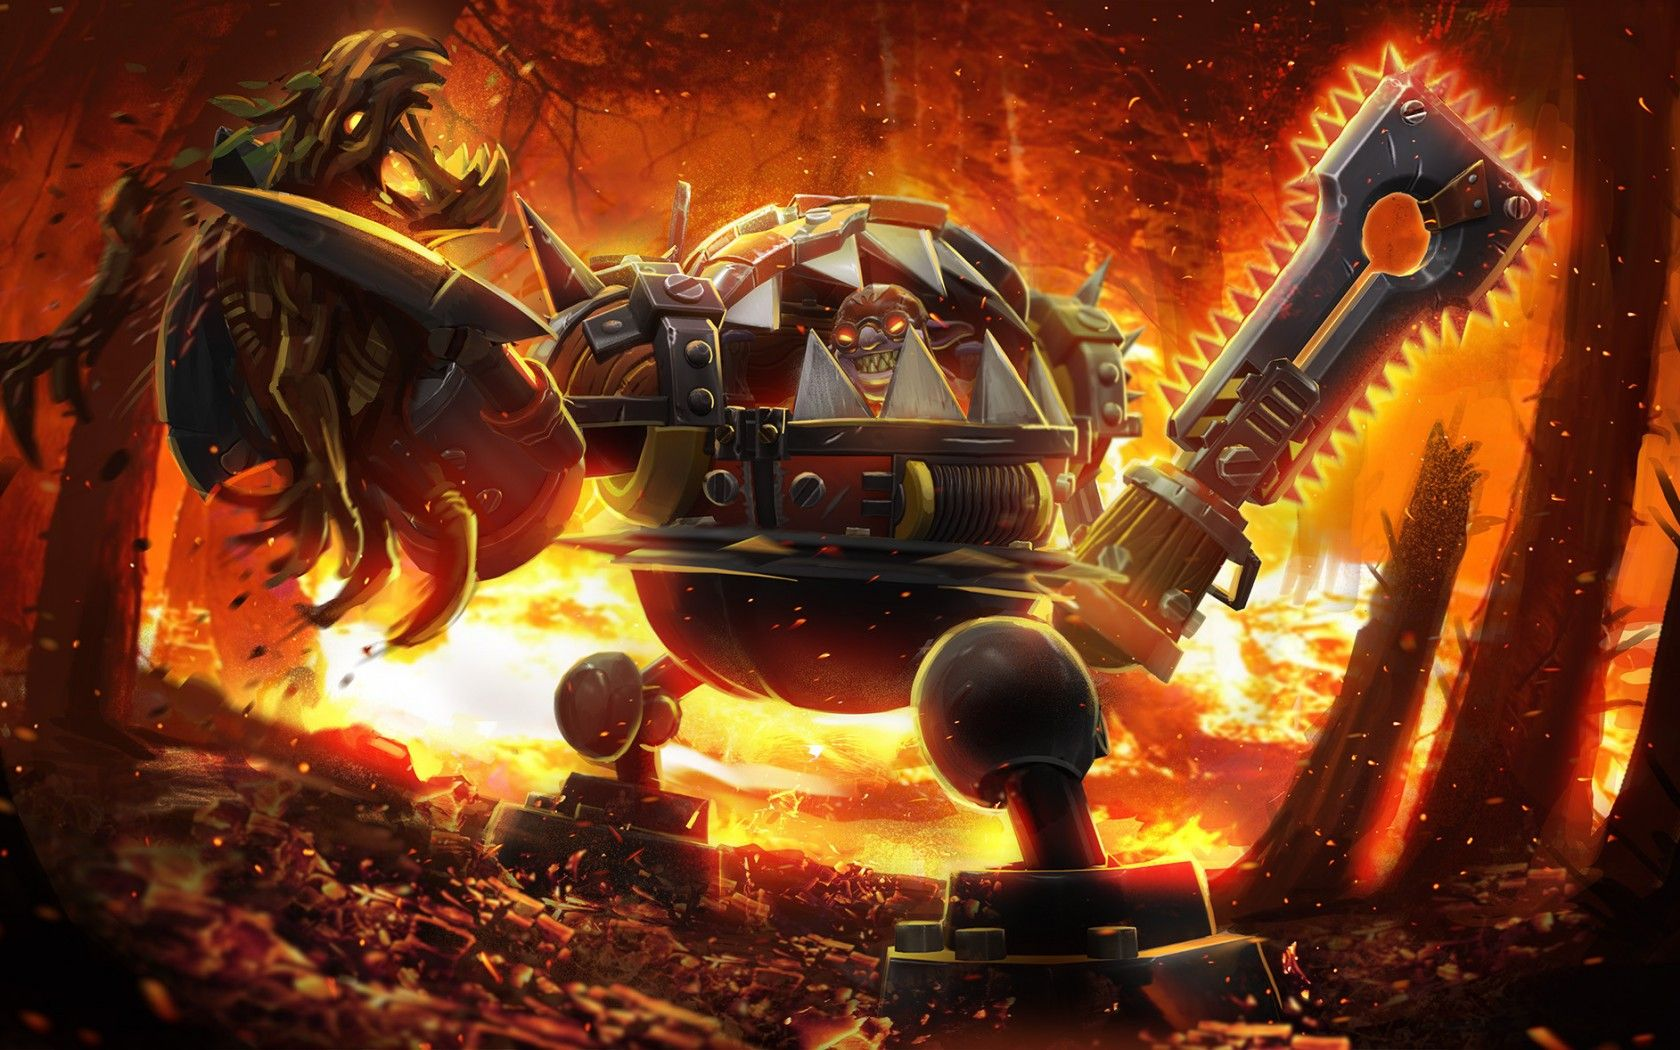 Dota2 wallpaper pc wallpapers gallery tactical gaming - Image For Free Dota 2 Timber Saw Video Game Hd Wallpaper